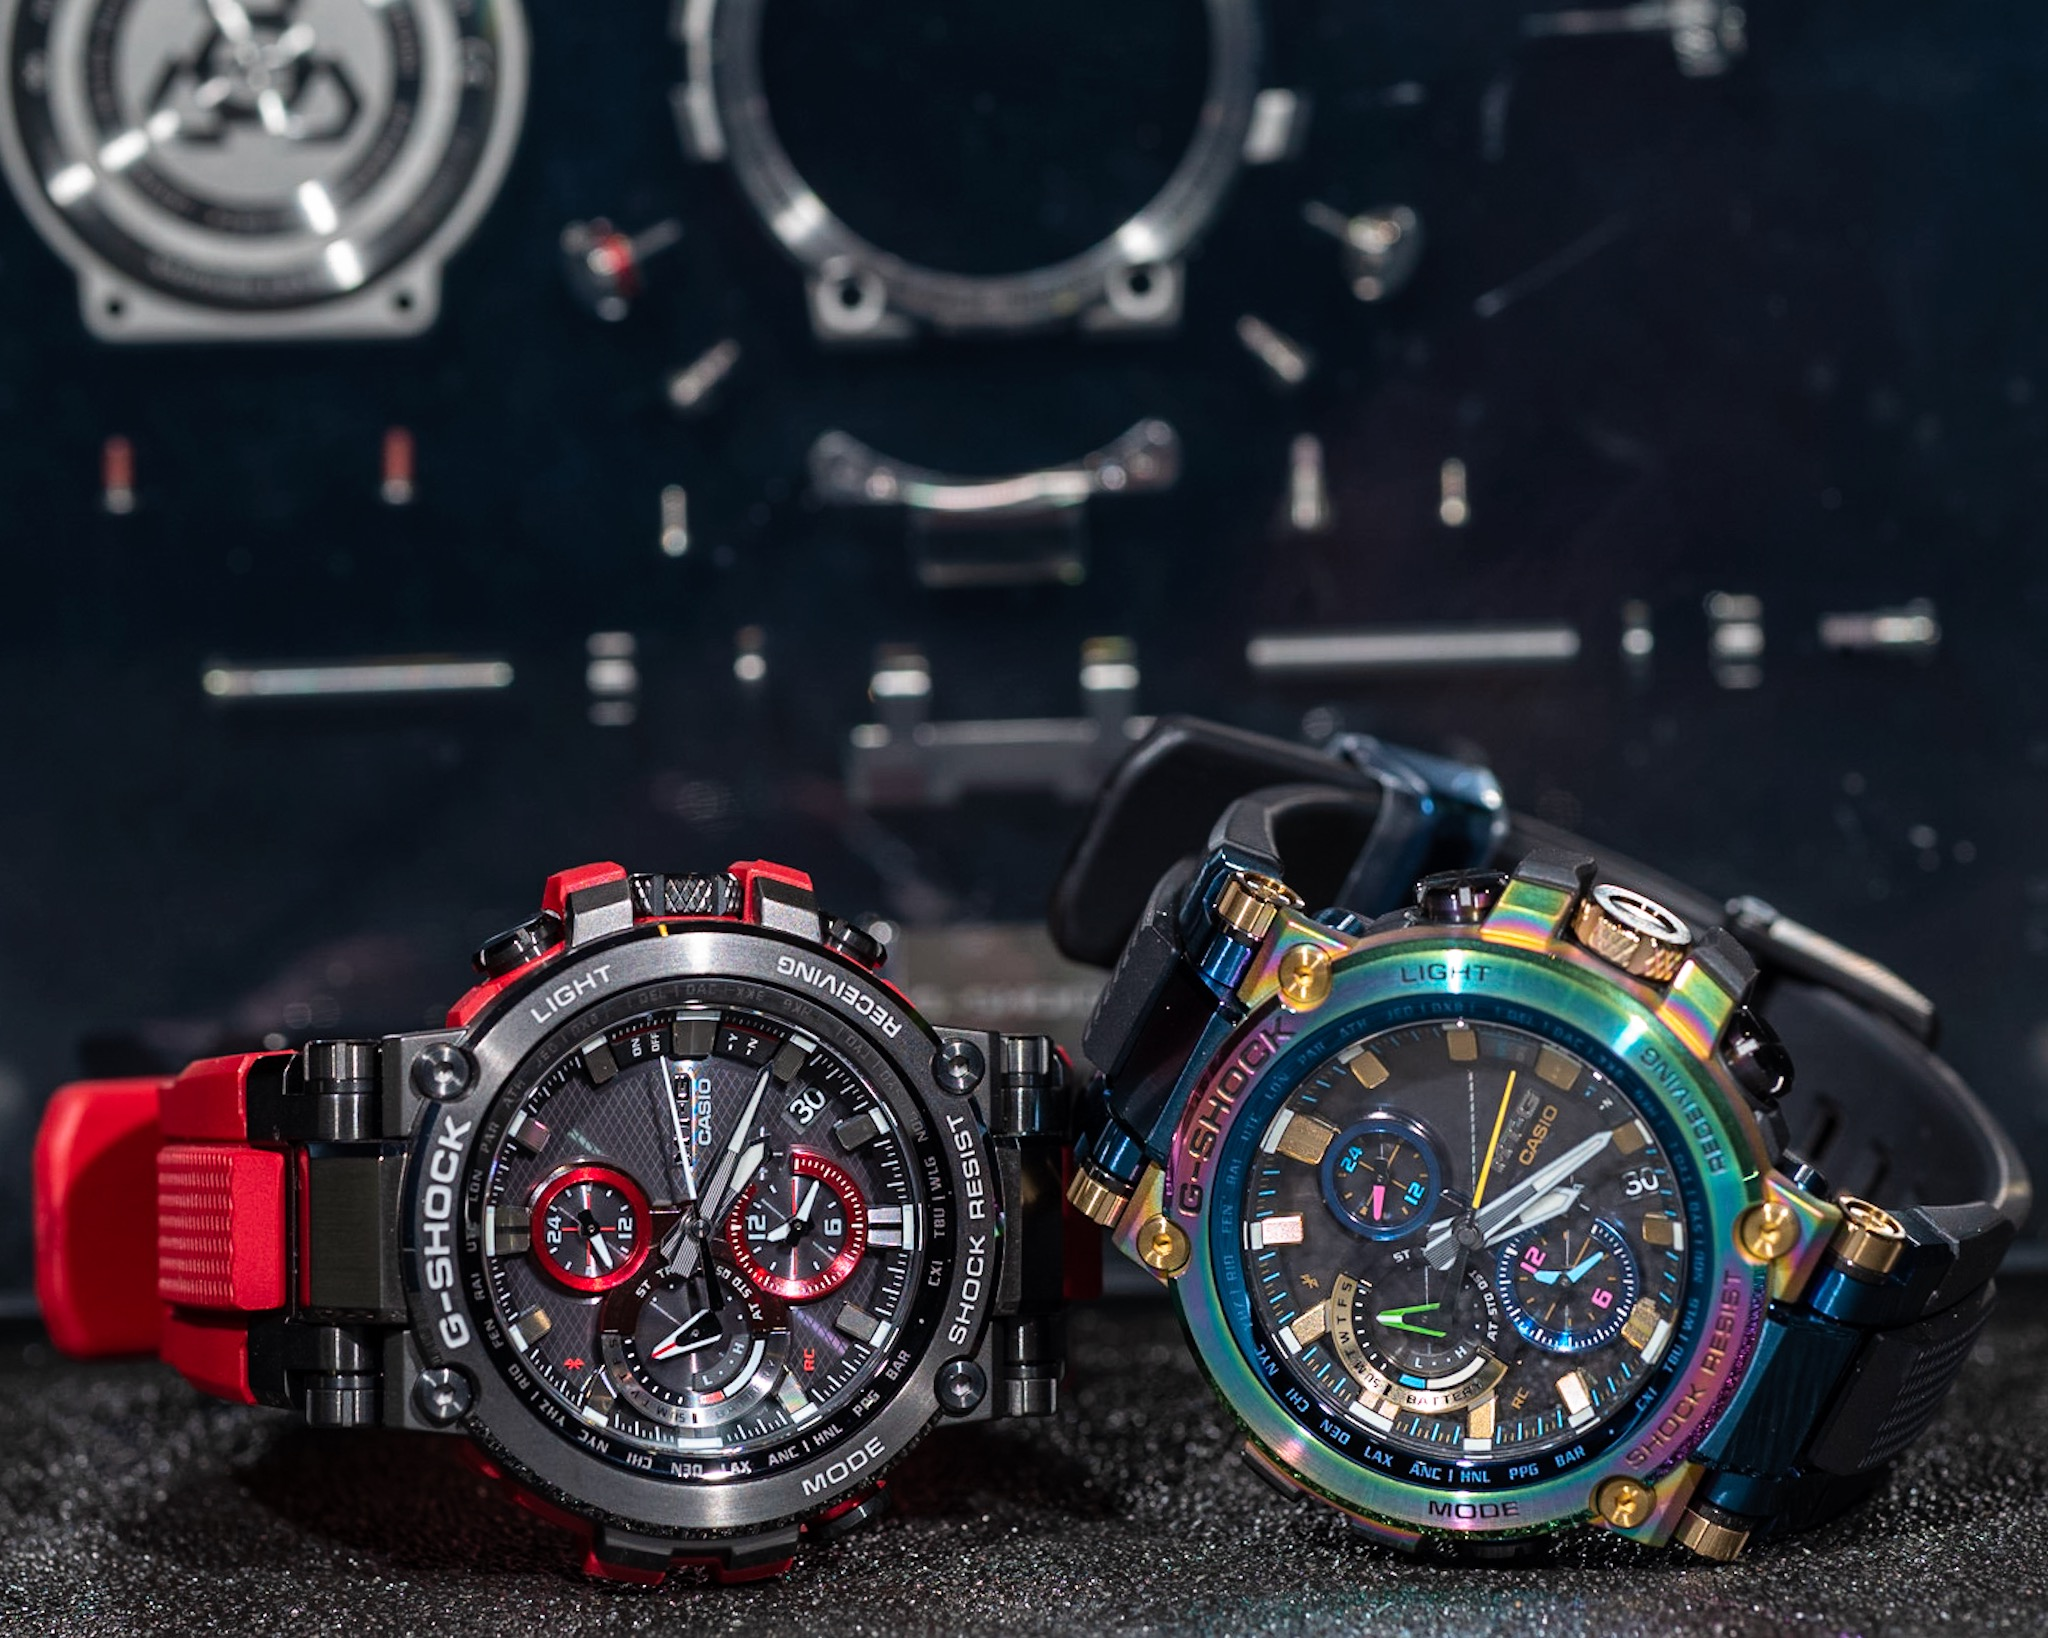 casio-couturetime-2019-26.JPG